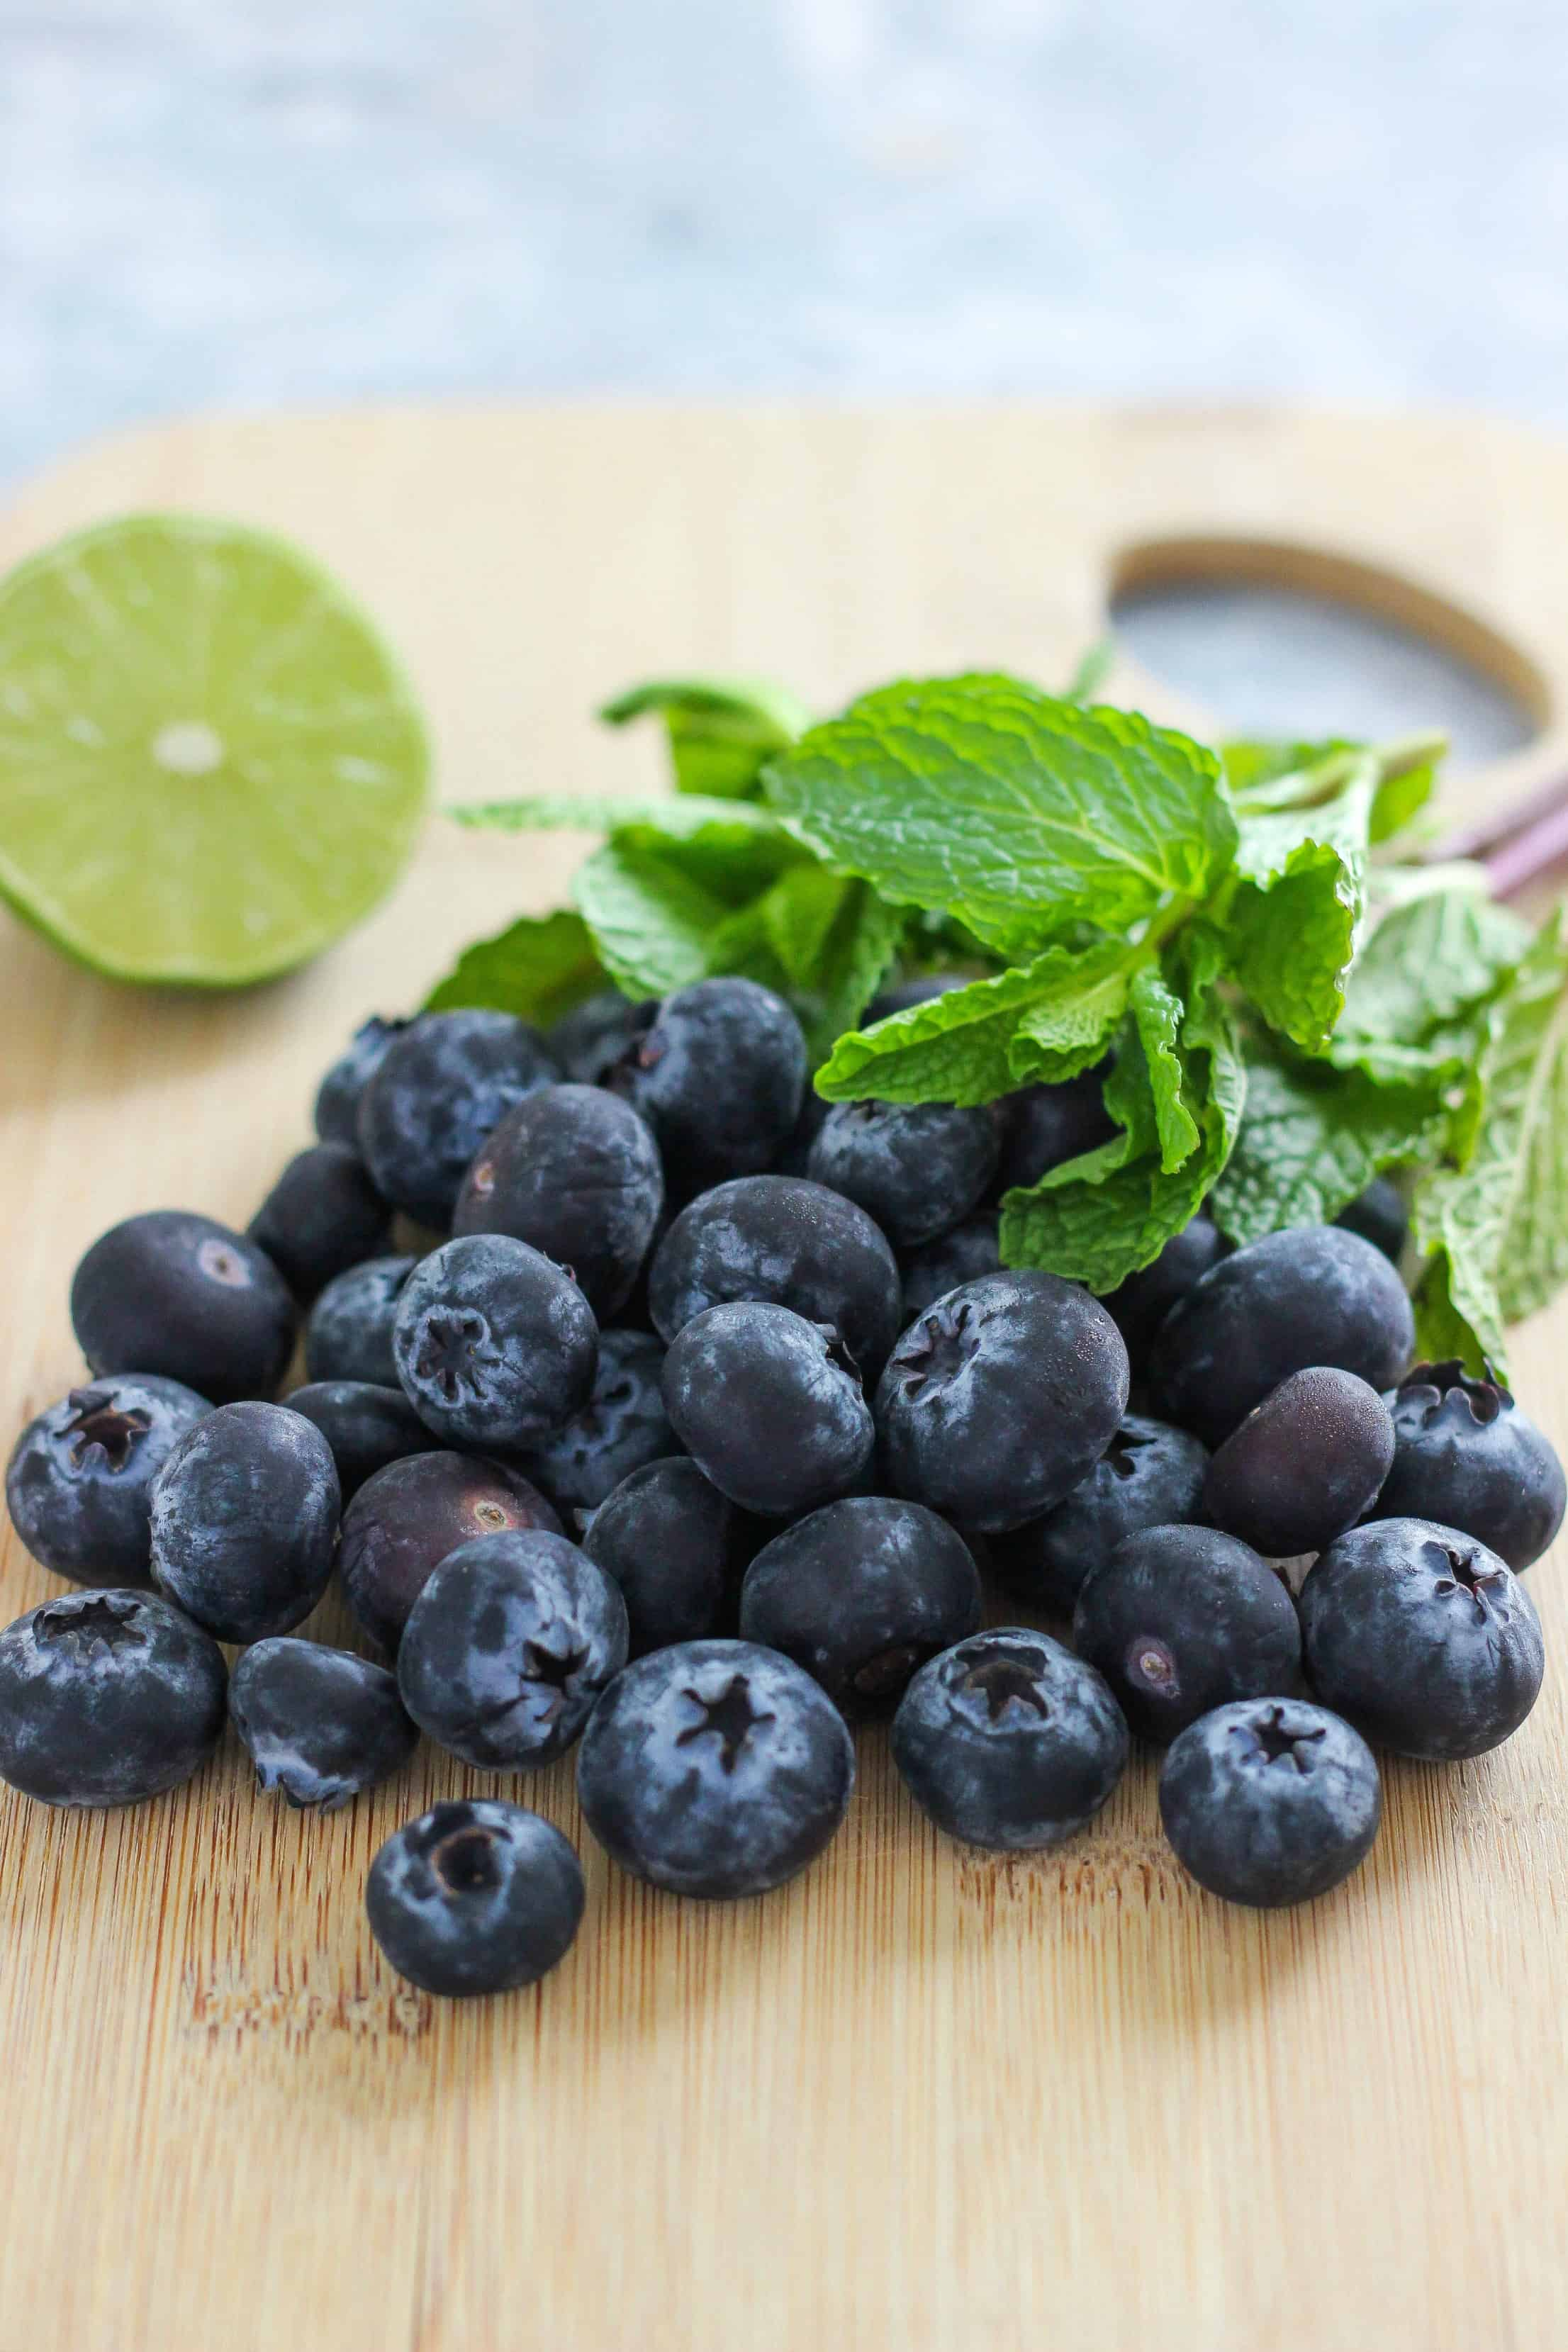 Enjoy a refreshing Blueberry Bourbon Summer Smash cocktail made with fresh blueberries, mint, lime juice, simple syrup, and bourbon.